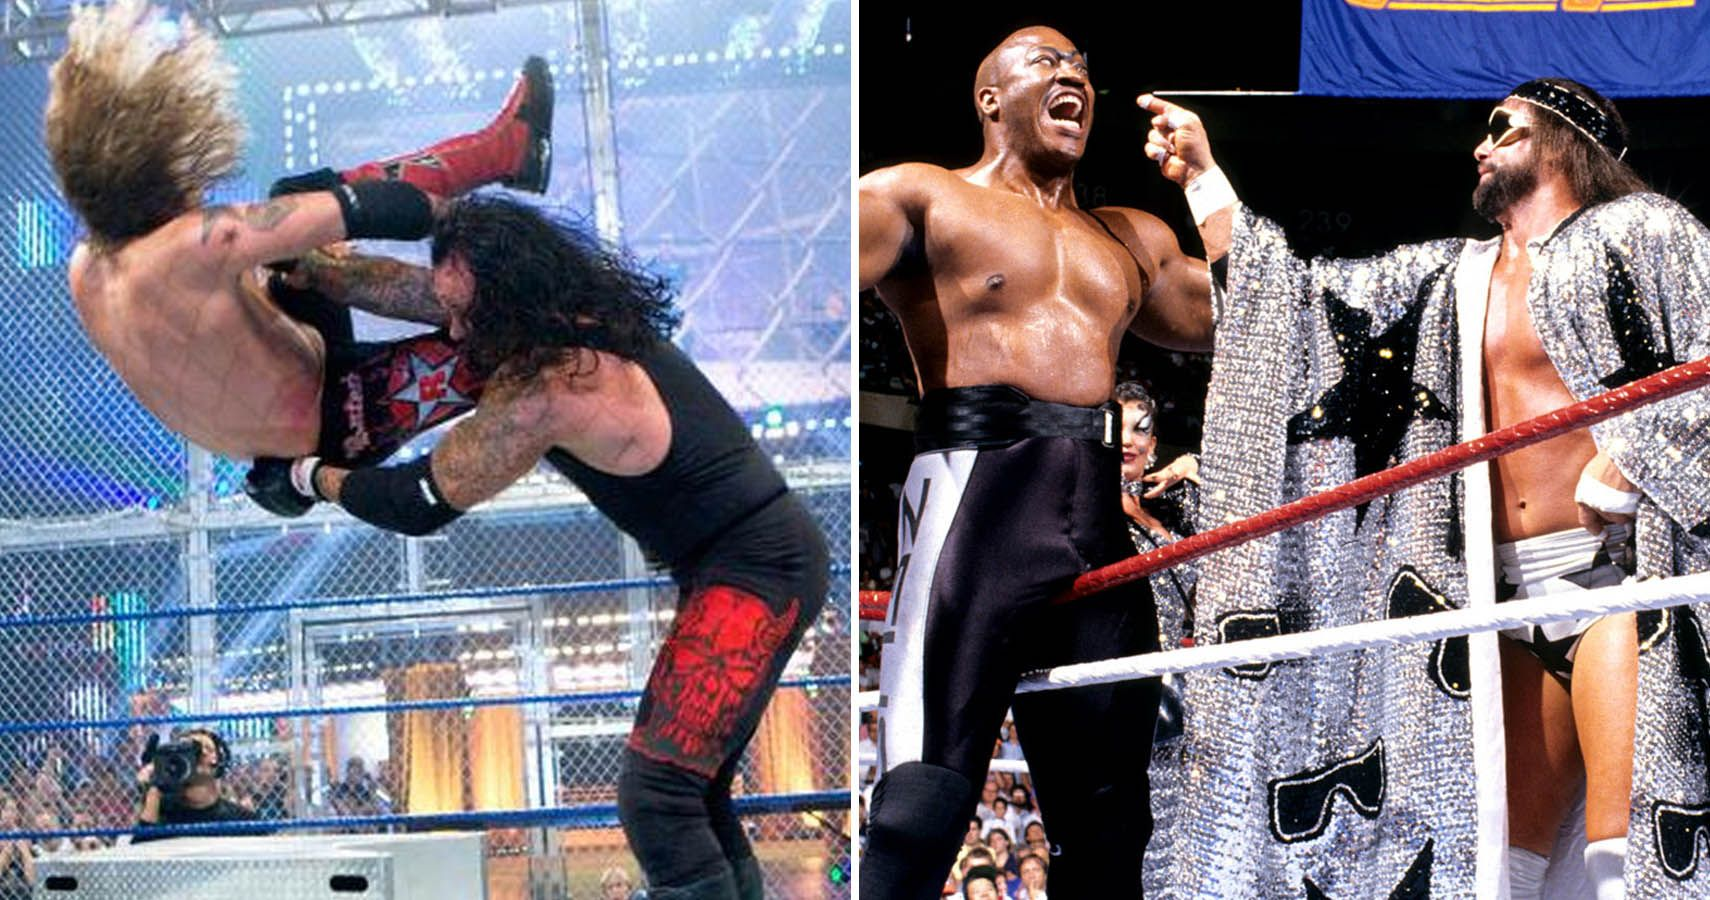 The 8 Best & 7 Worst SummerSlam Main Events Of All Time